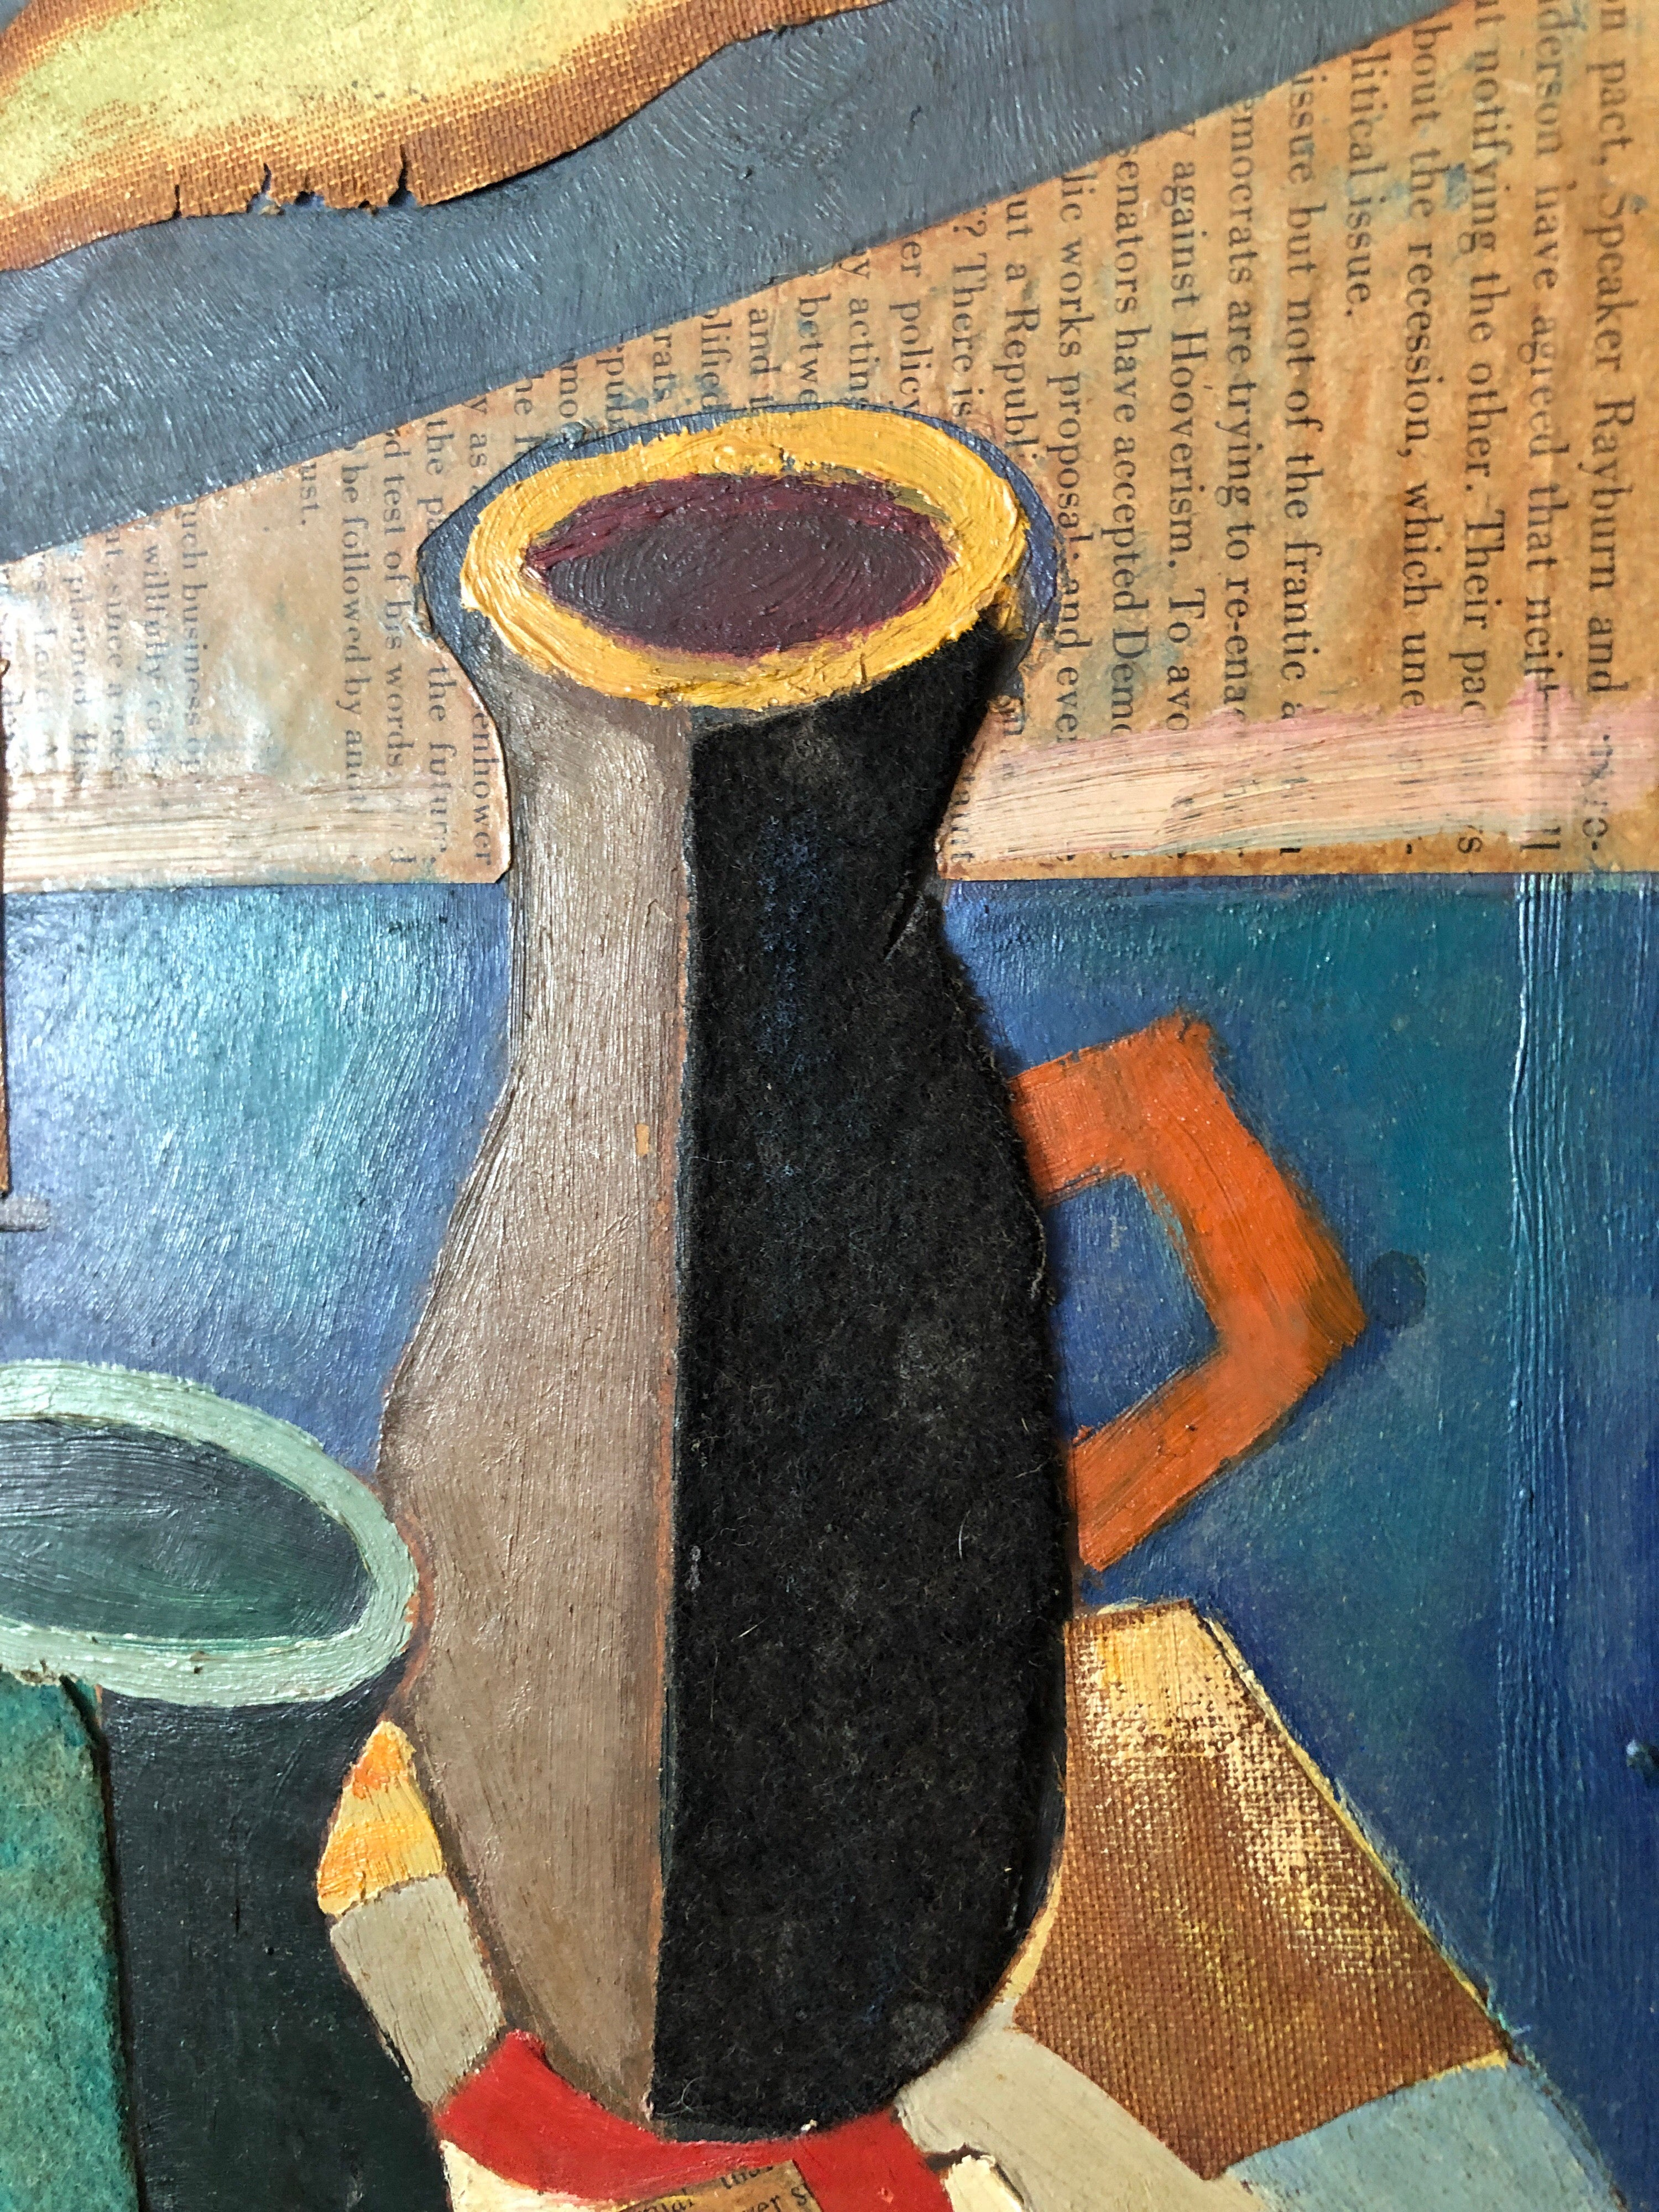 Unknown European Collage Cubist Oil Painting 1960 Surrealist Interior With Vase And Pipe For Sale At 1stdibs